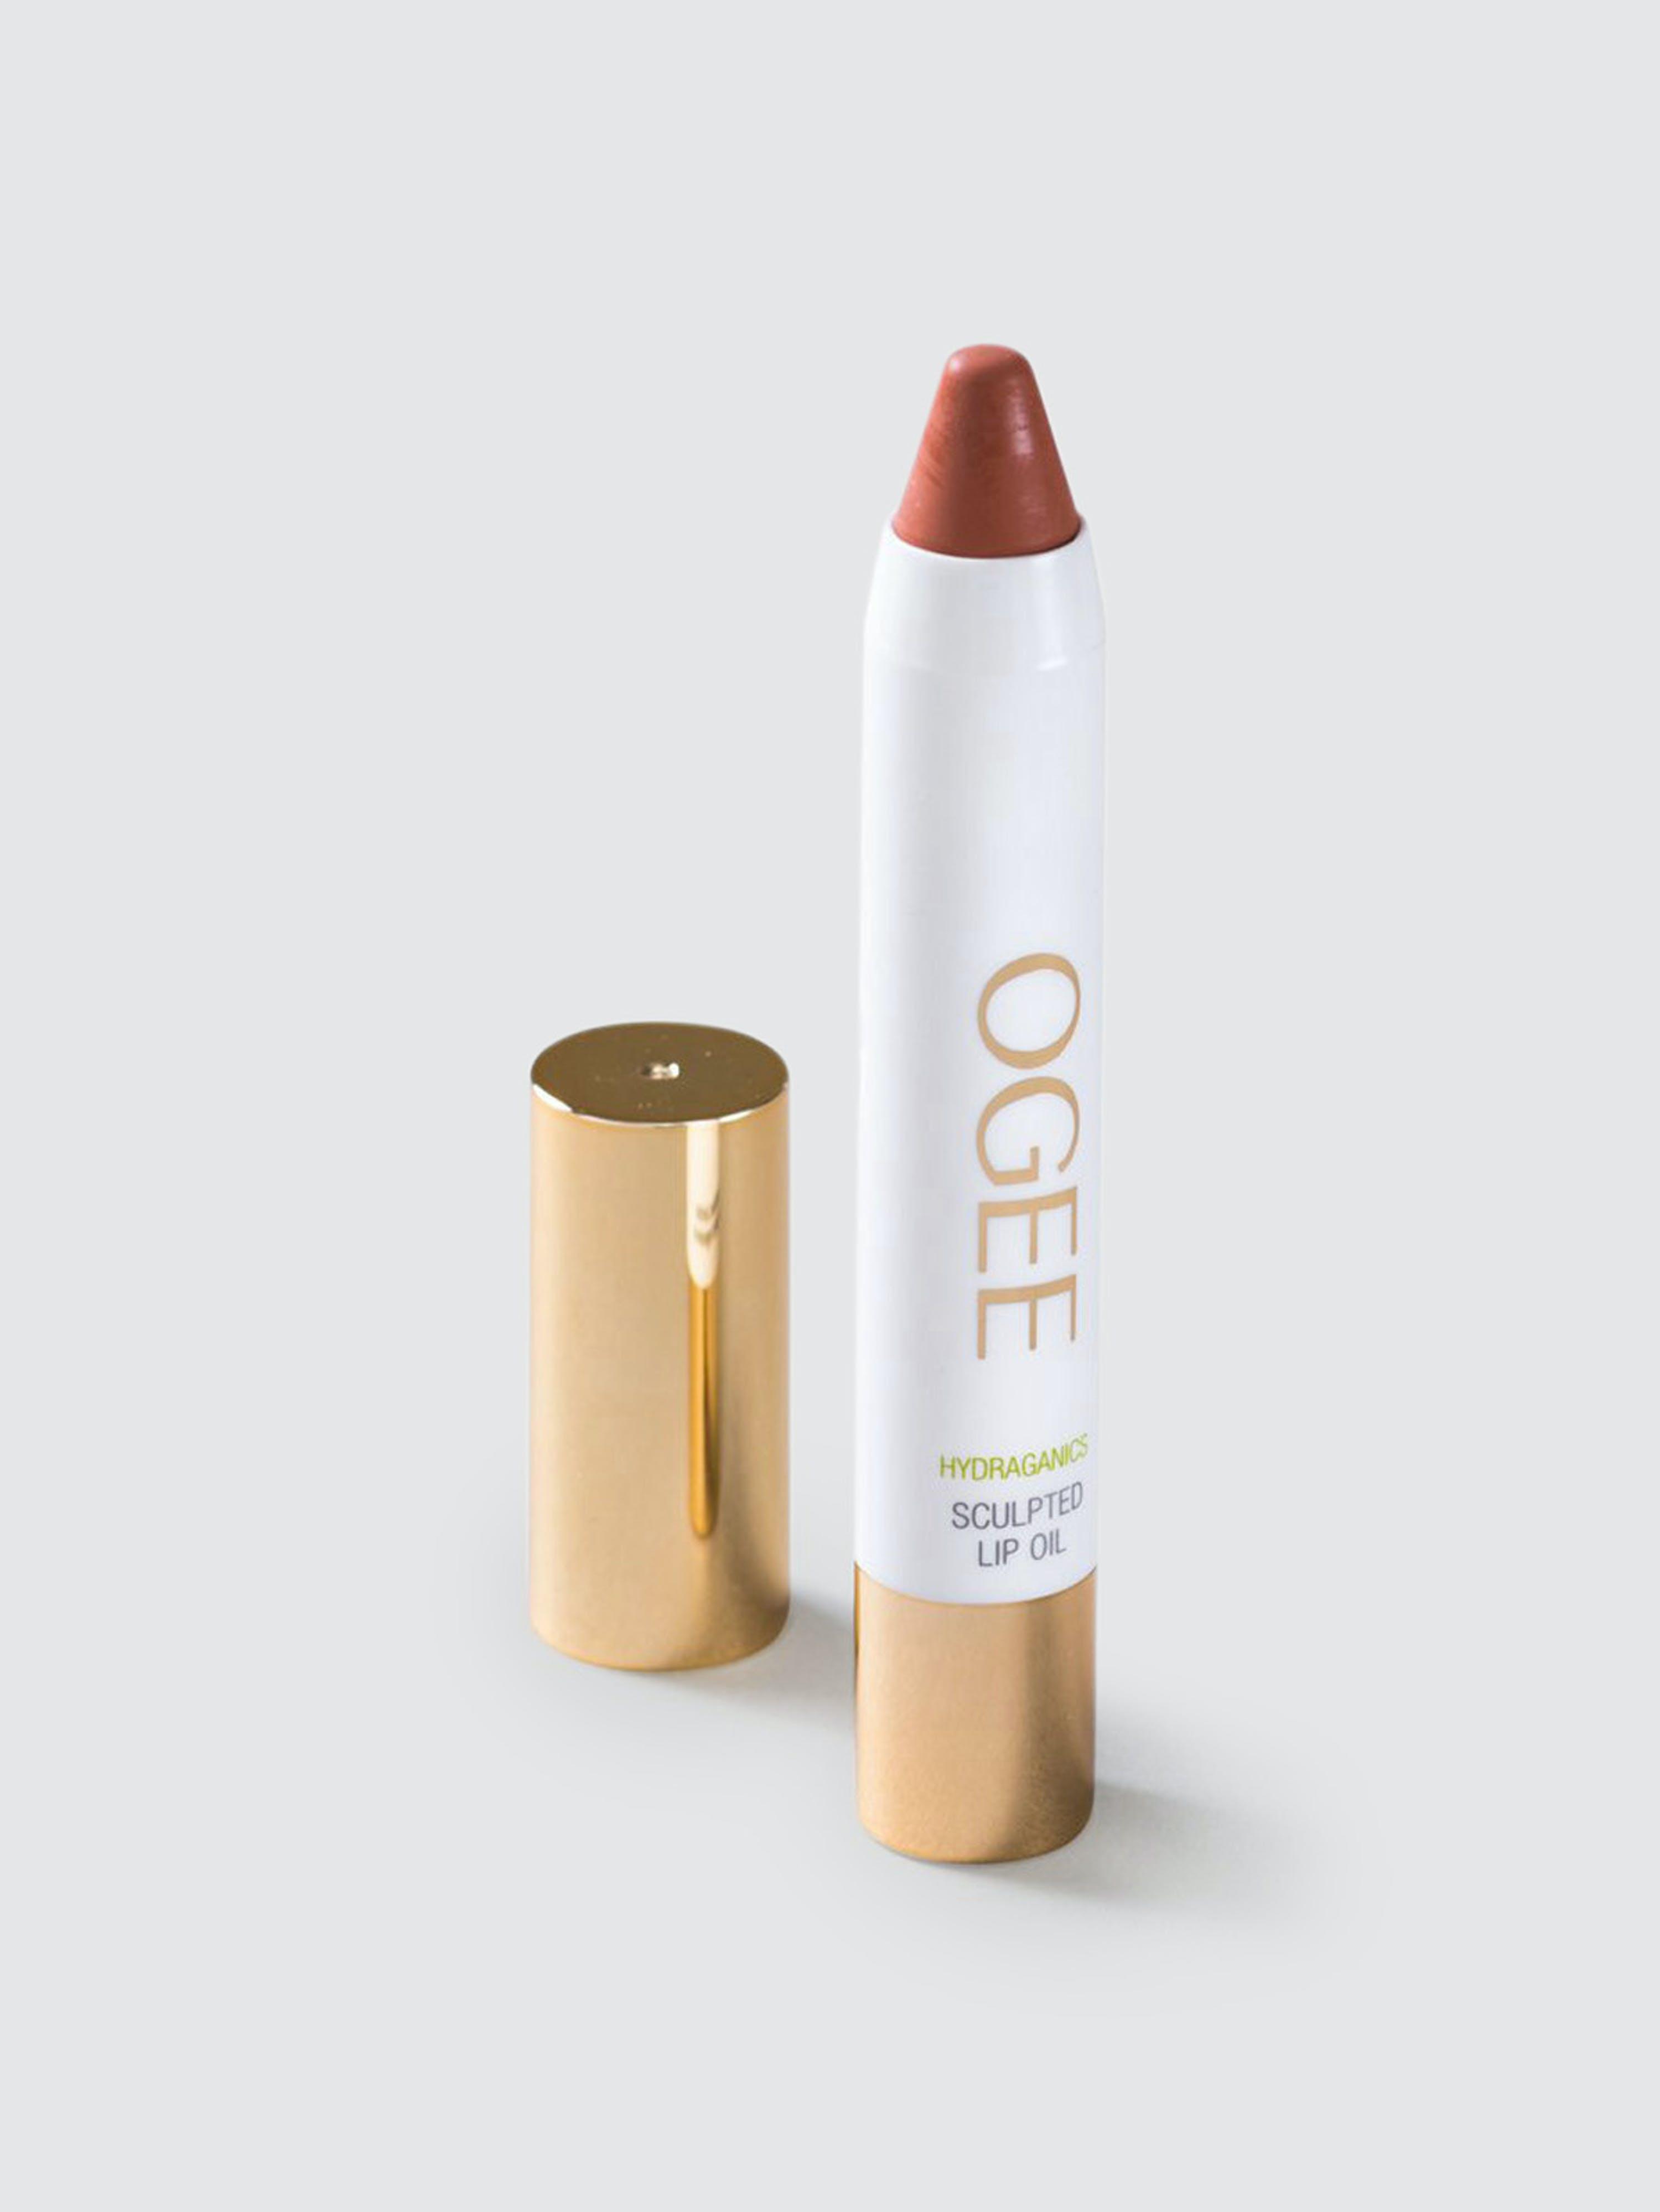 Ogee Luxury Organics Tinted Sculpted Lip Oil In Brown